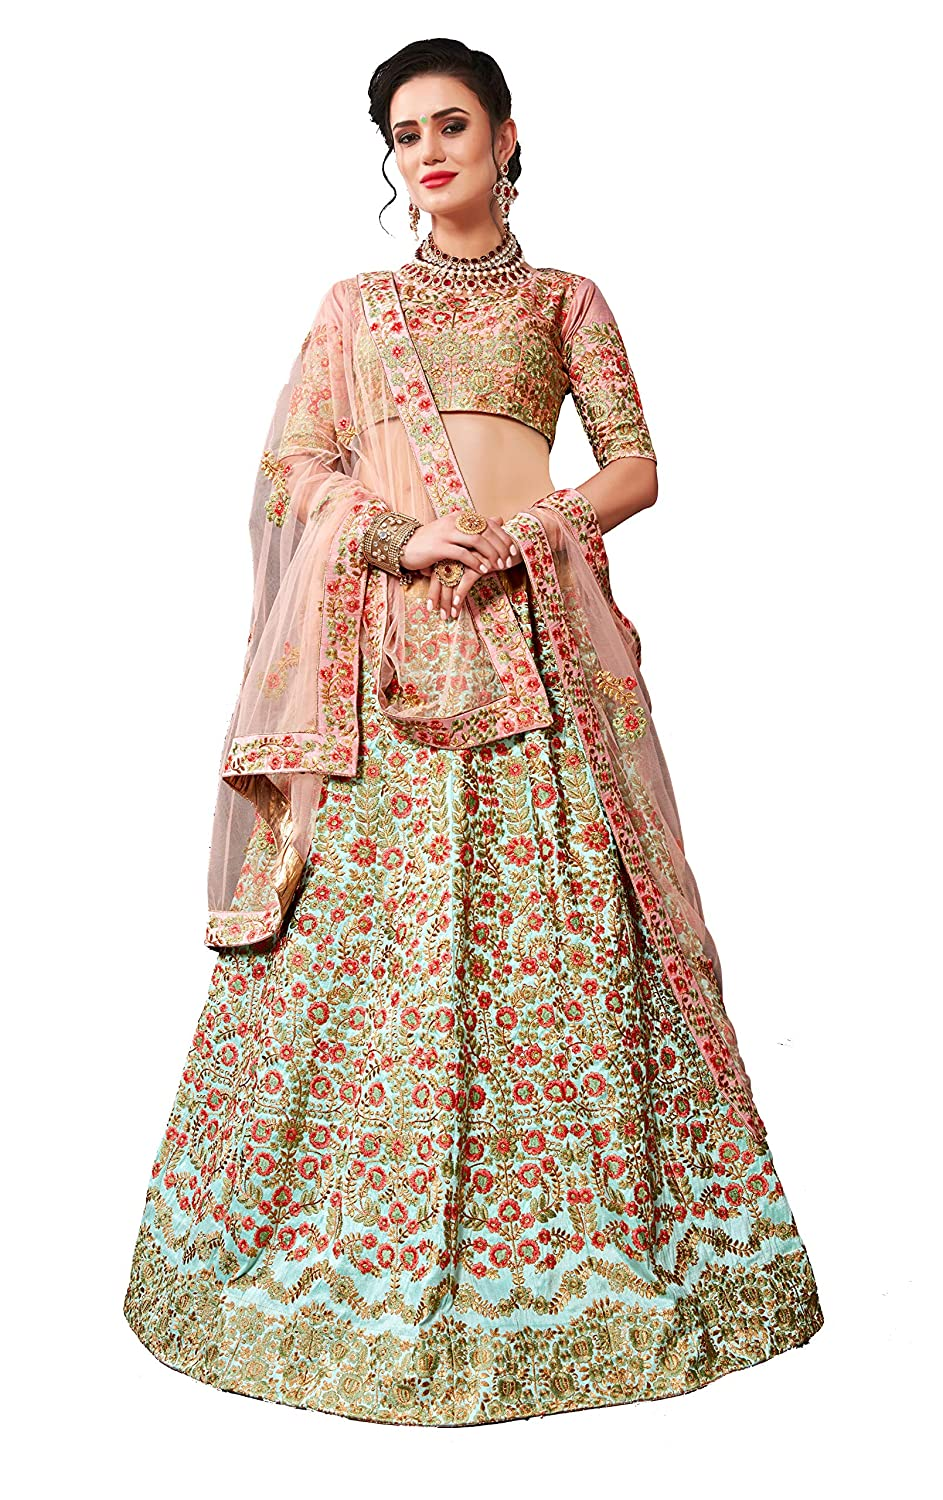 2e83390eb5 MEGHALYA Bridal Collection Phantom Silk Embroidered Phantom Silk Lehenga  choli for women(Breezy Blue, Free size): Amazon.in: Clothing & Accessories